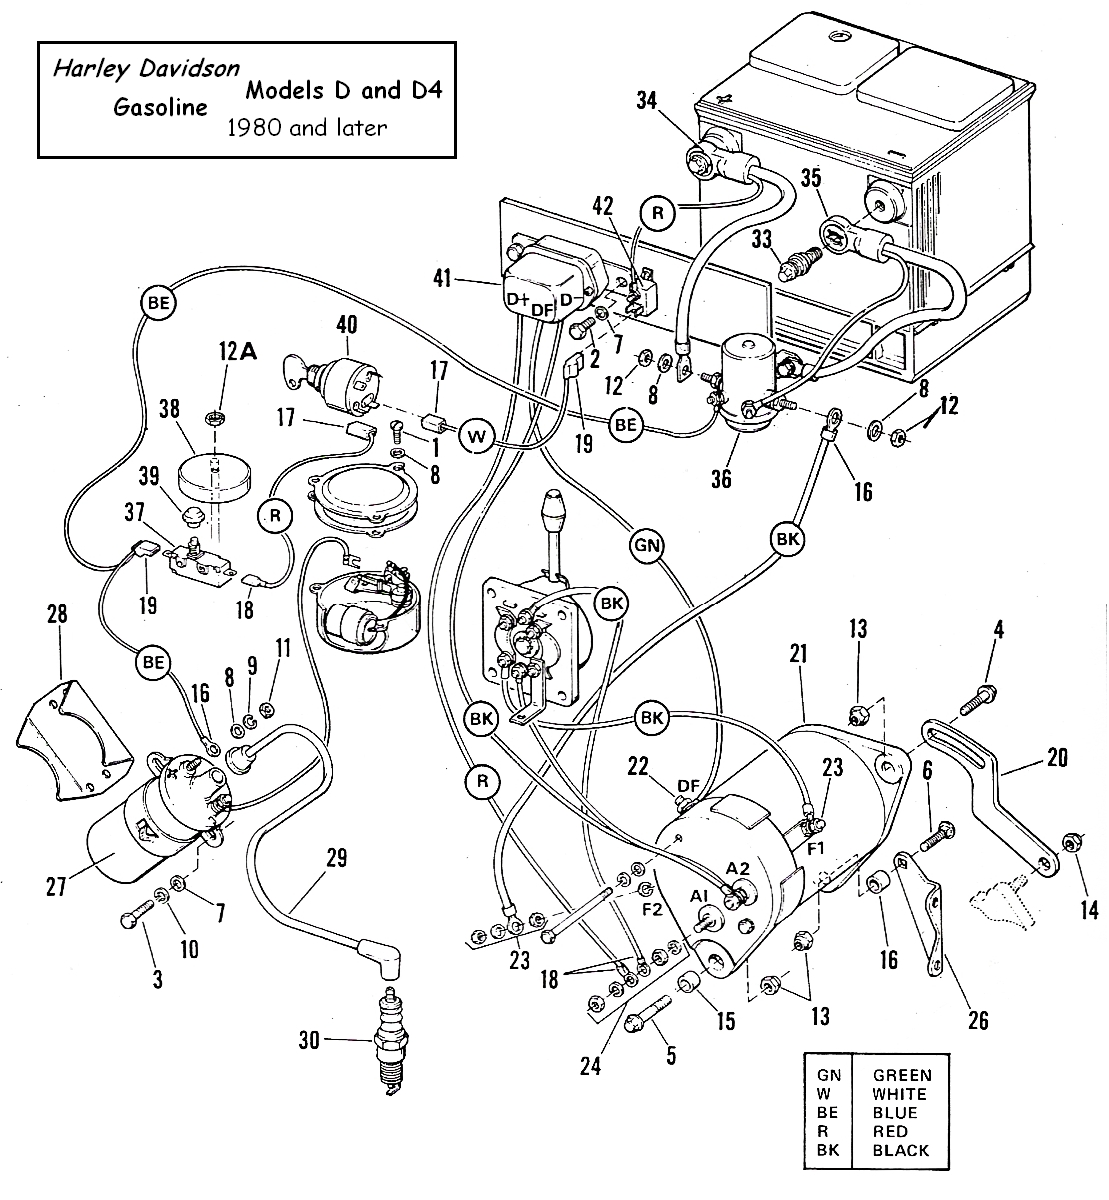 Harle Davidson Wiring Diagram – Name on columbia gas golf cart wiring diagram, ford voltage regulator diagram, international cub tractor wiring diagram, farmall cub tractor wiring diagram, 12v voltage regulator diagram, cub cadet wiring diagram, harley charging system diagram, motorcycle headlight relay wiring diagram, ballast resistor wiring diagram, chevrolet voltage regulator diagram,